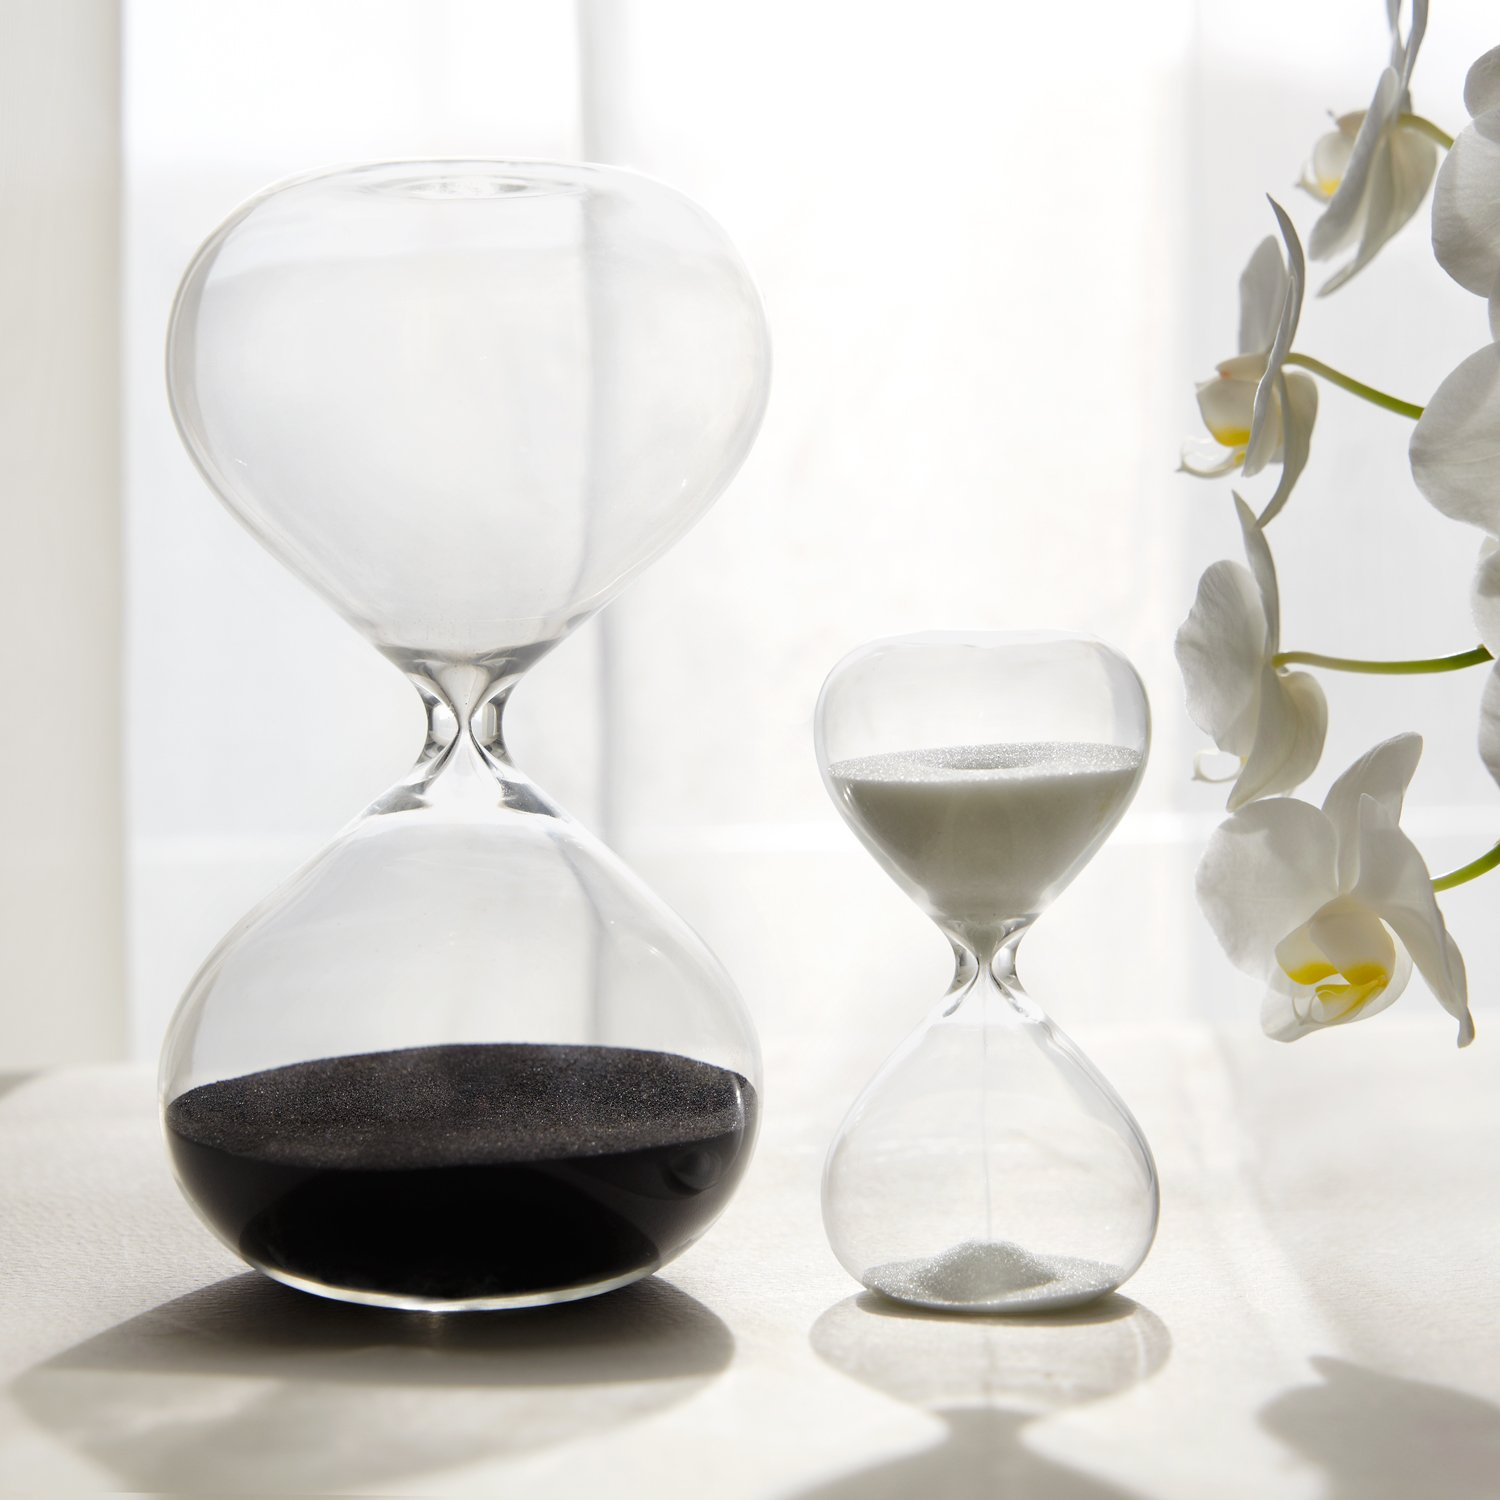 30 & 5 Minute Gravity Hourglasses - Time Management Set - Deep Black & Snow White by Abergel AB-0